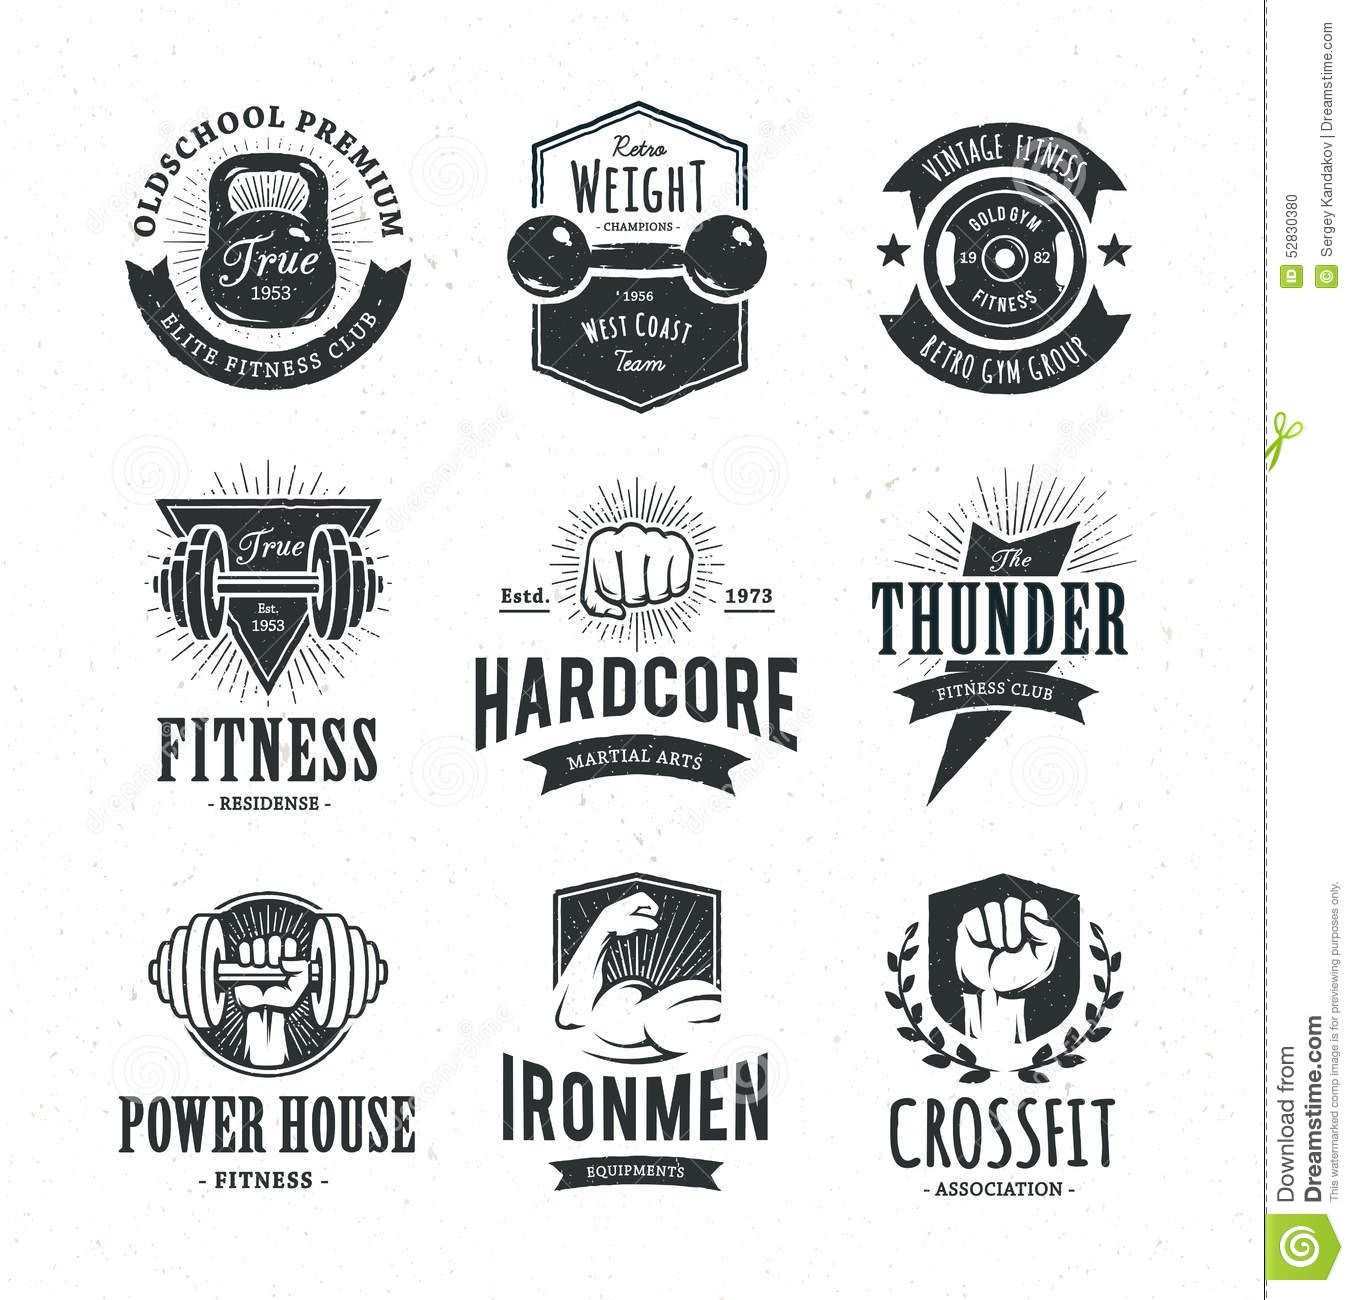 vintage boxing design - Google Search | Clothing brand ...